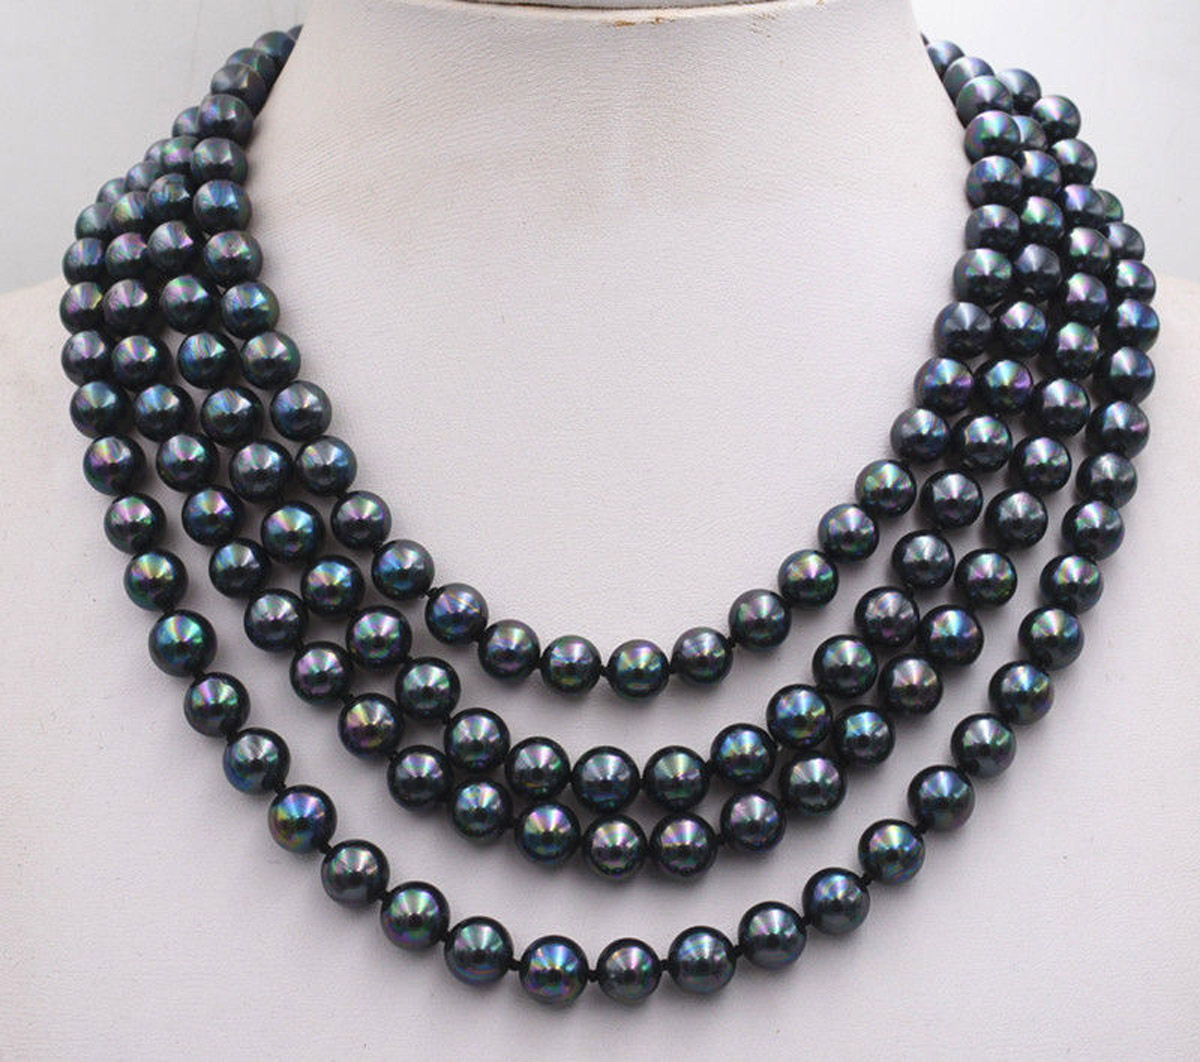 25/'/'8mm round black freshwater pearl necklace